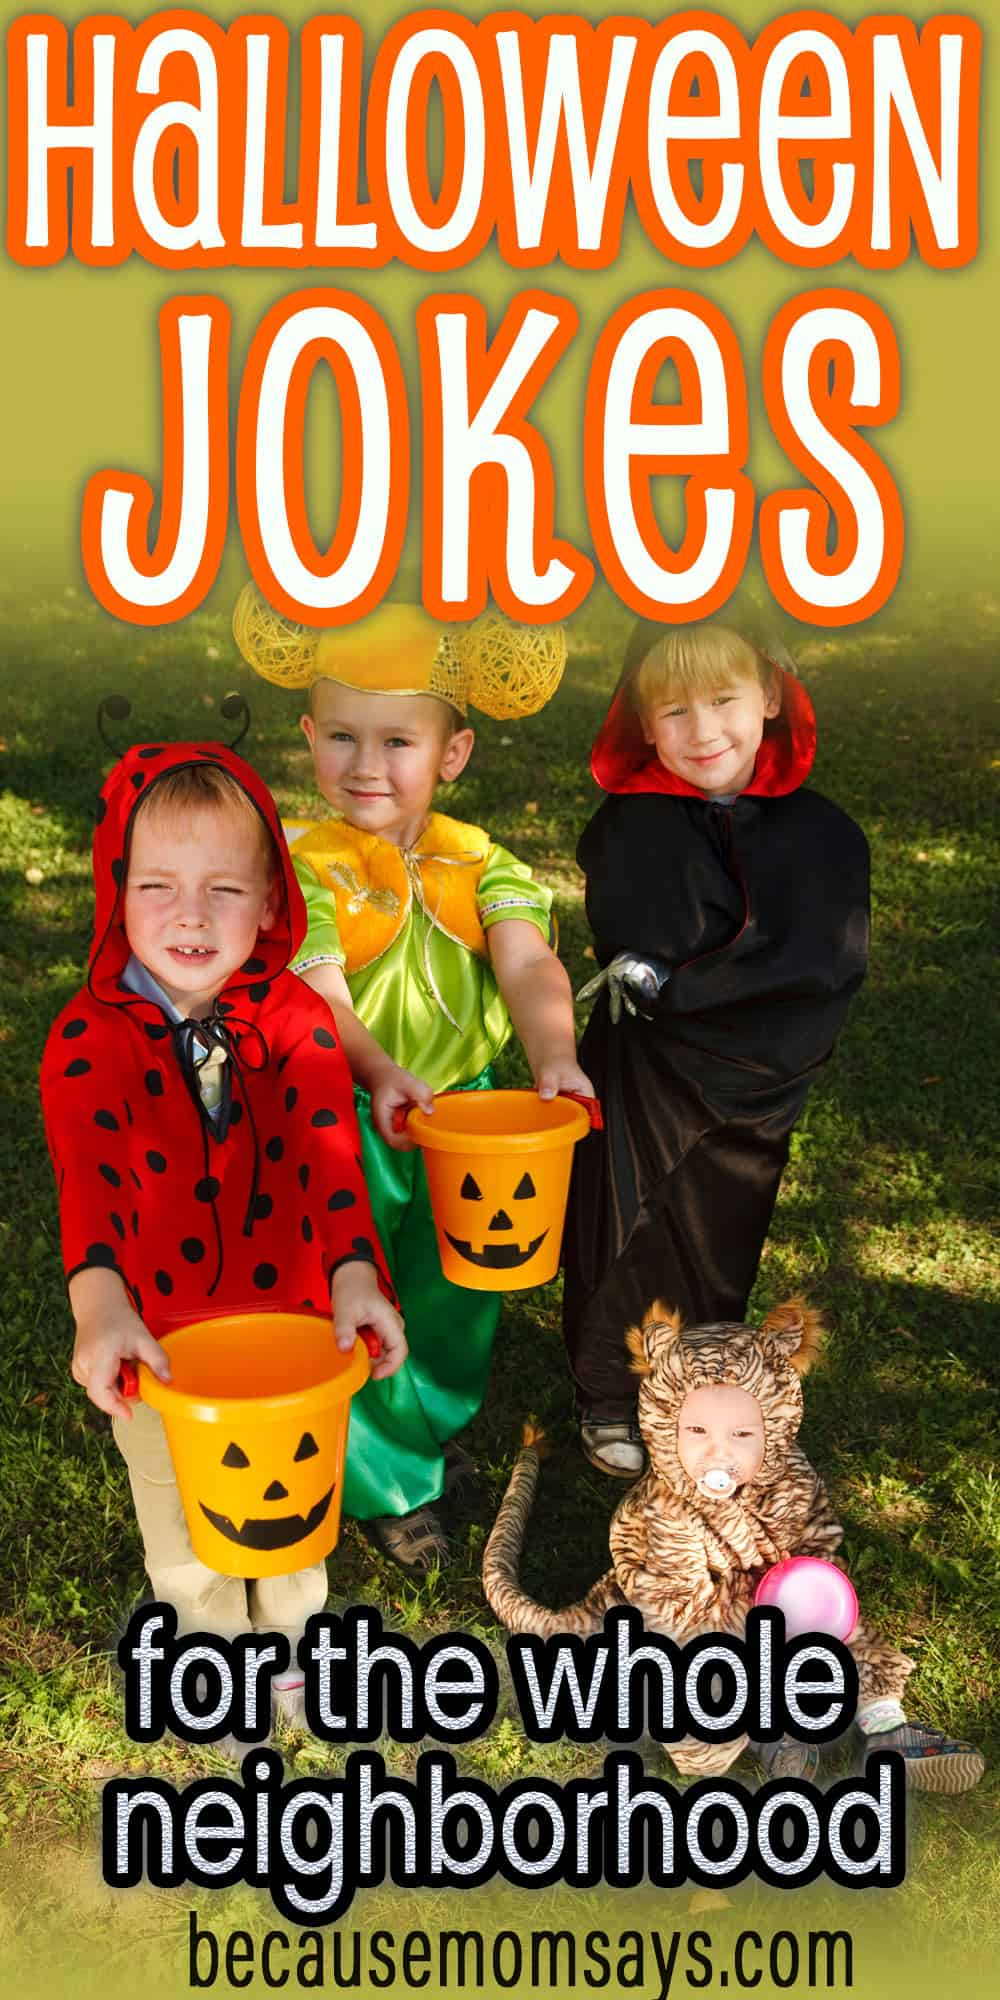 funny halloween jokes - kids in costume trick or treating